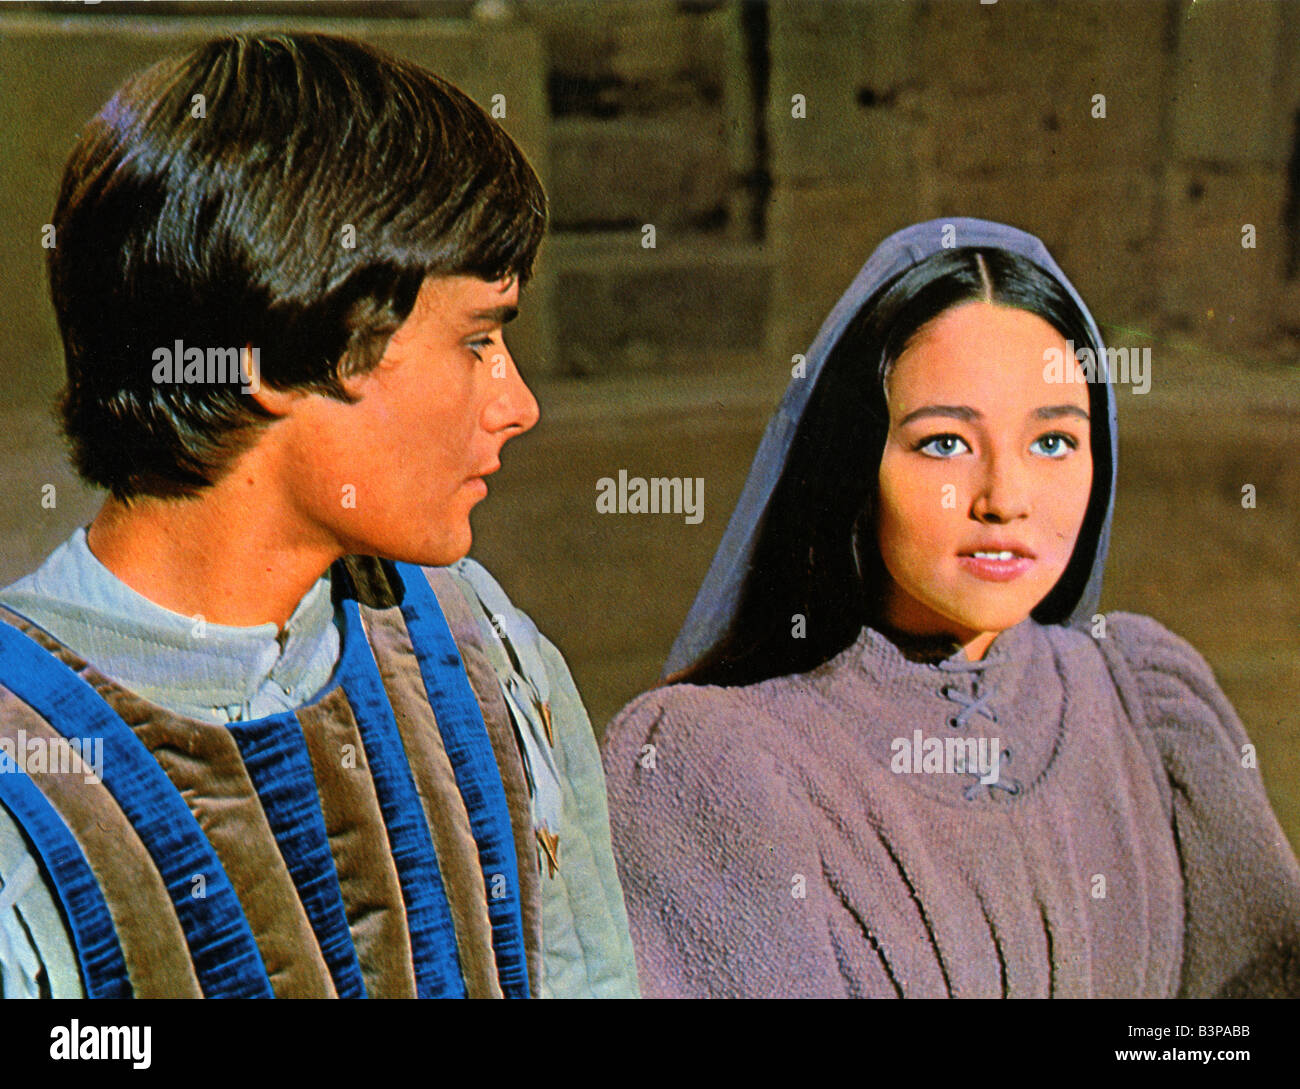 franco zeffirelli romeo and juliet Zeffirelli's acclaimed adaptation of shakespeare's timeless love story  franco  zeffirelli's version of romeo & juliet is an incredible film with its faithful rendition.